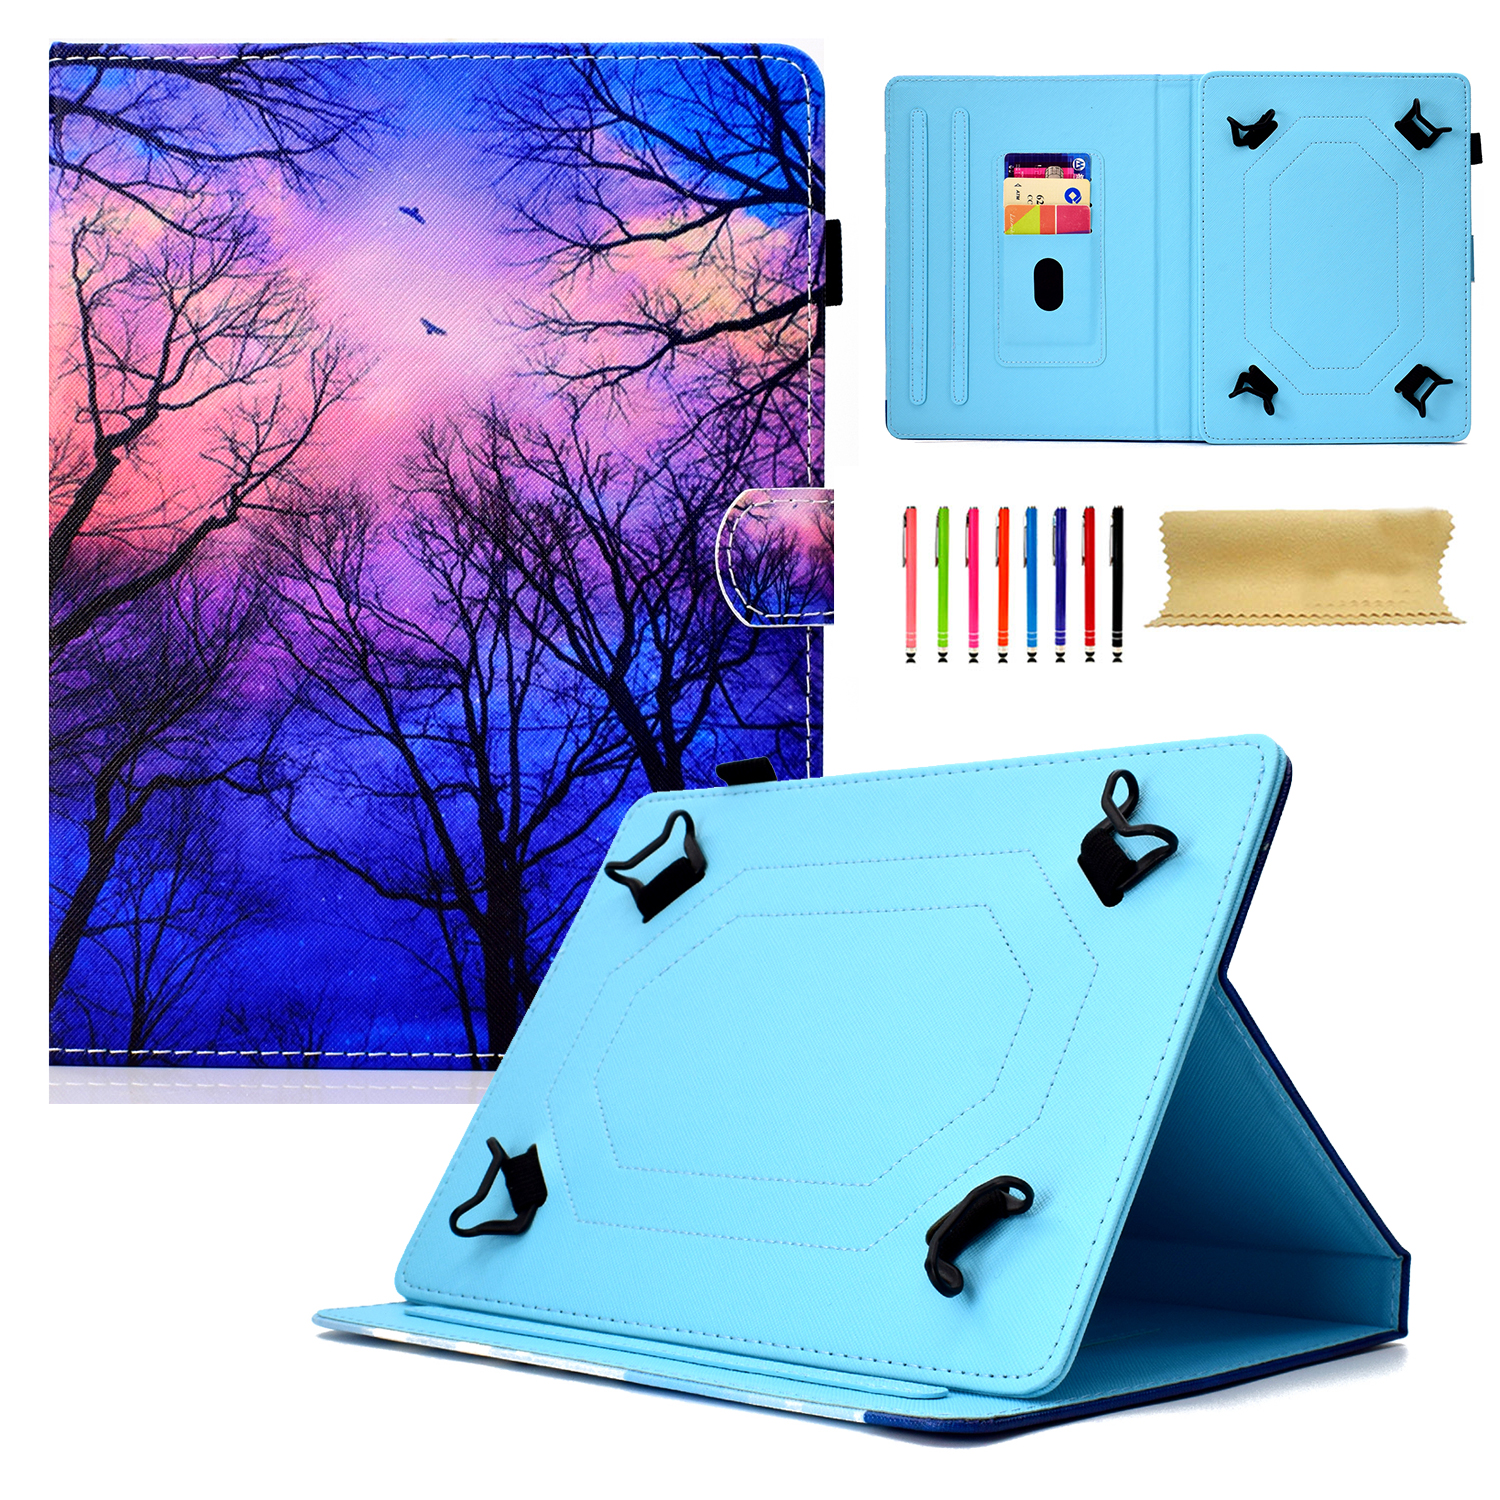 """Goodest Universal 8 Inch Tablet Case, Slim Fit Folio Protective Stand Wallet Cover for 7.5-8.5"""" Tablet 8"""" Touchscreen/iPad Mini/Galaxy Tab A/Fire HD 8/RCA/Chrome Nextbook iView, Forest"""